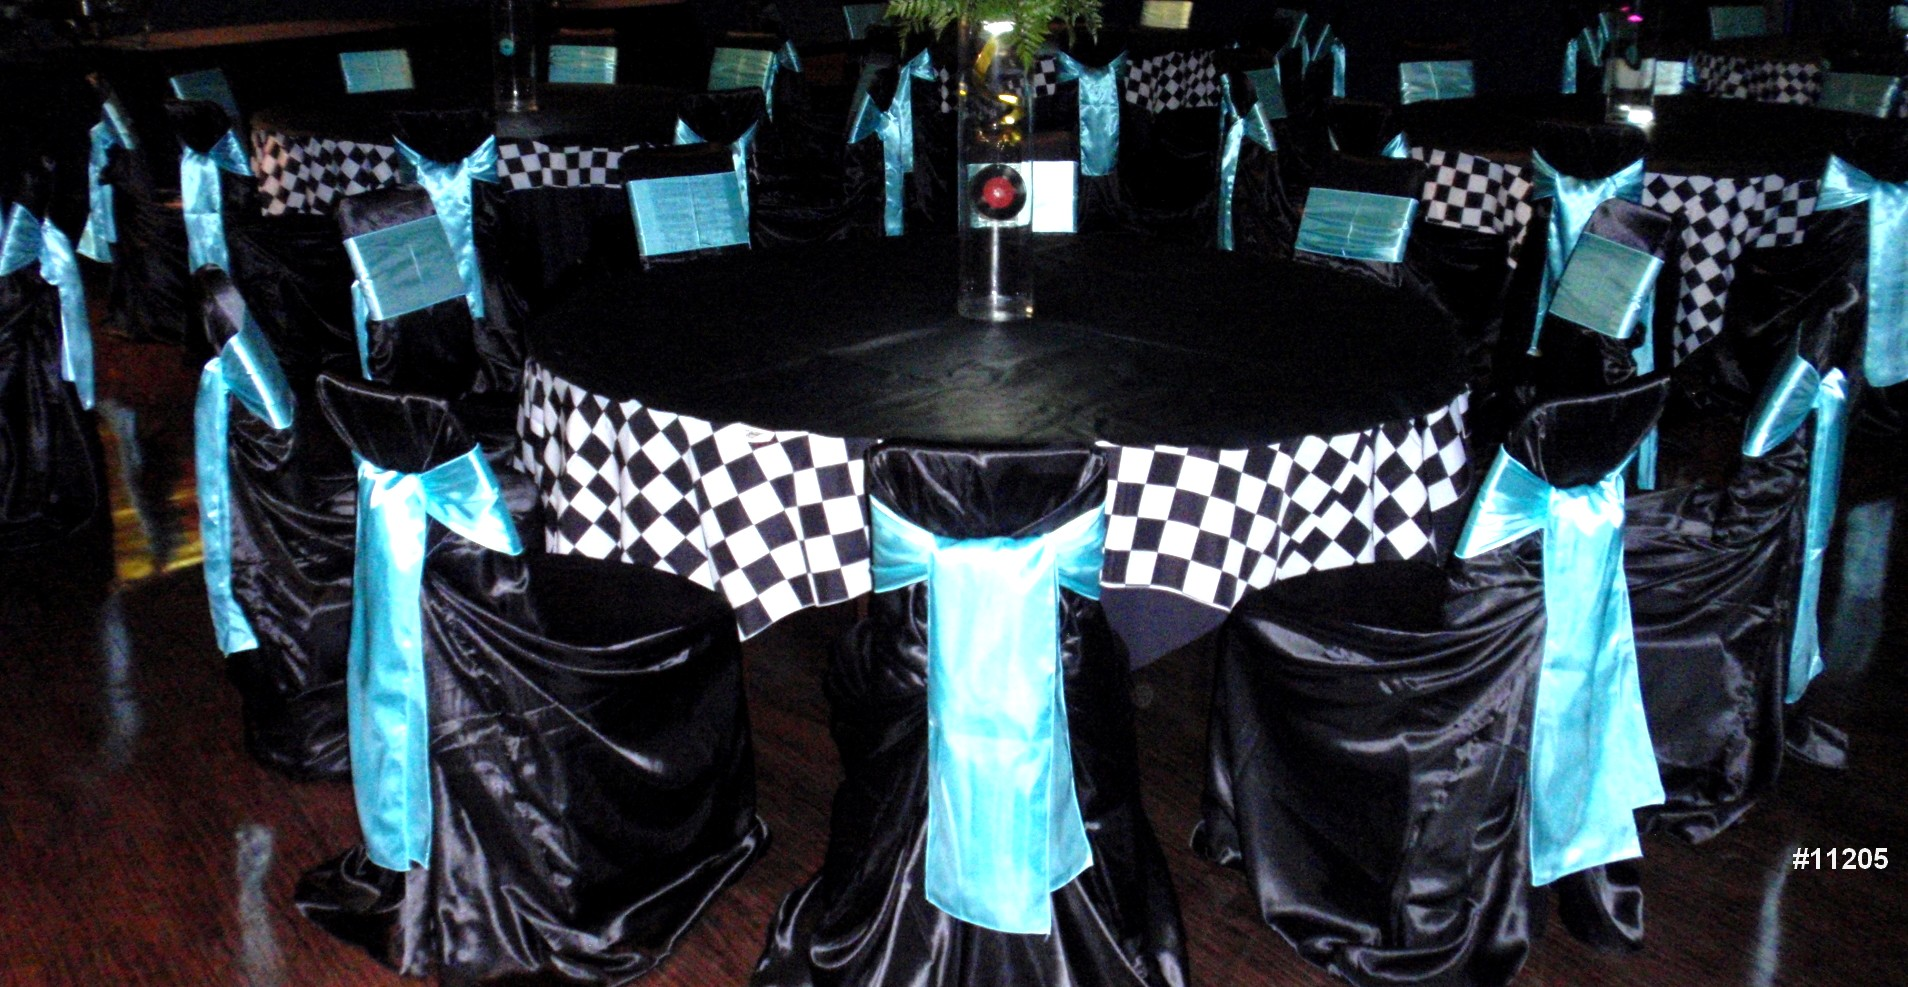 DC chair cover rentals black theme color 11205 Chair cover rentals